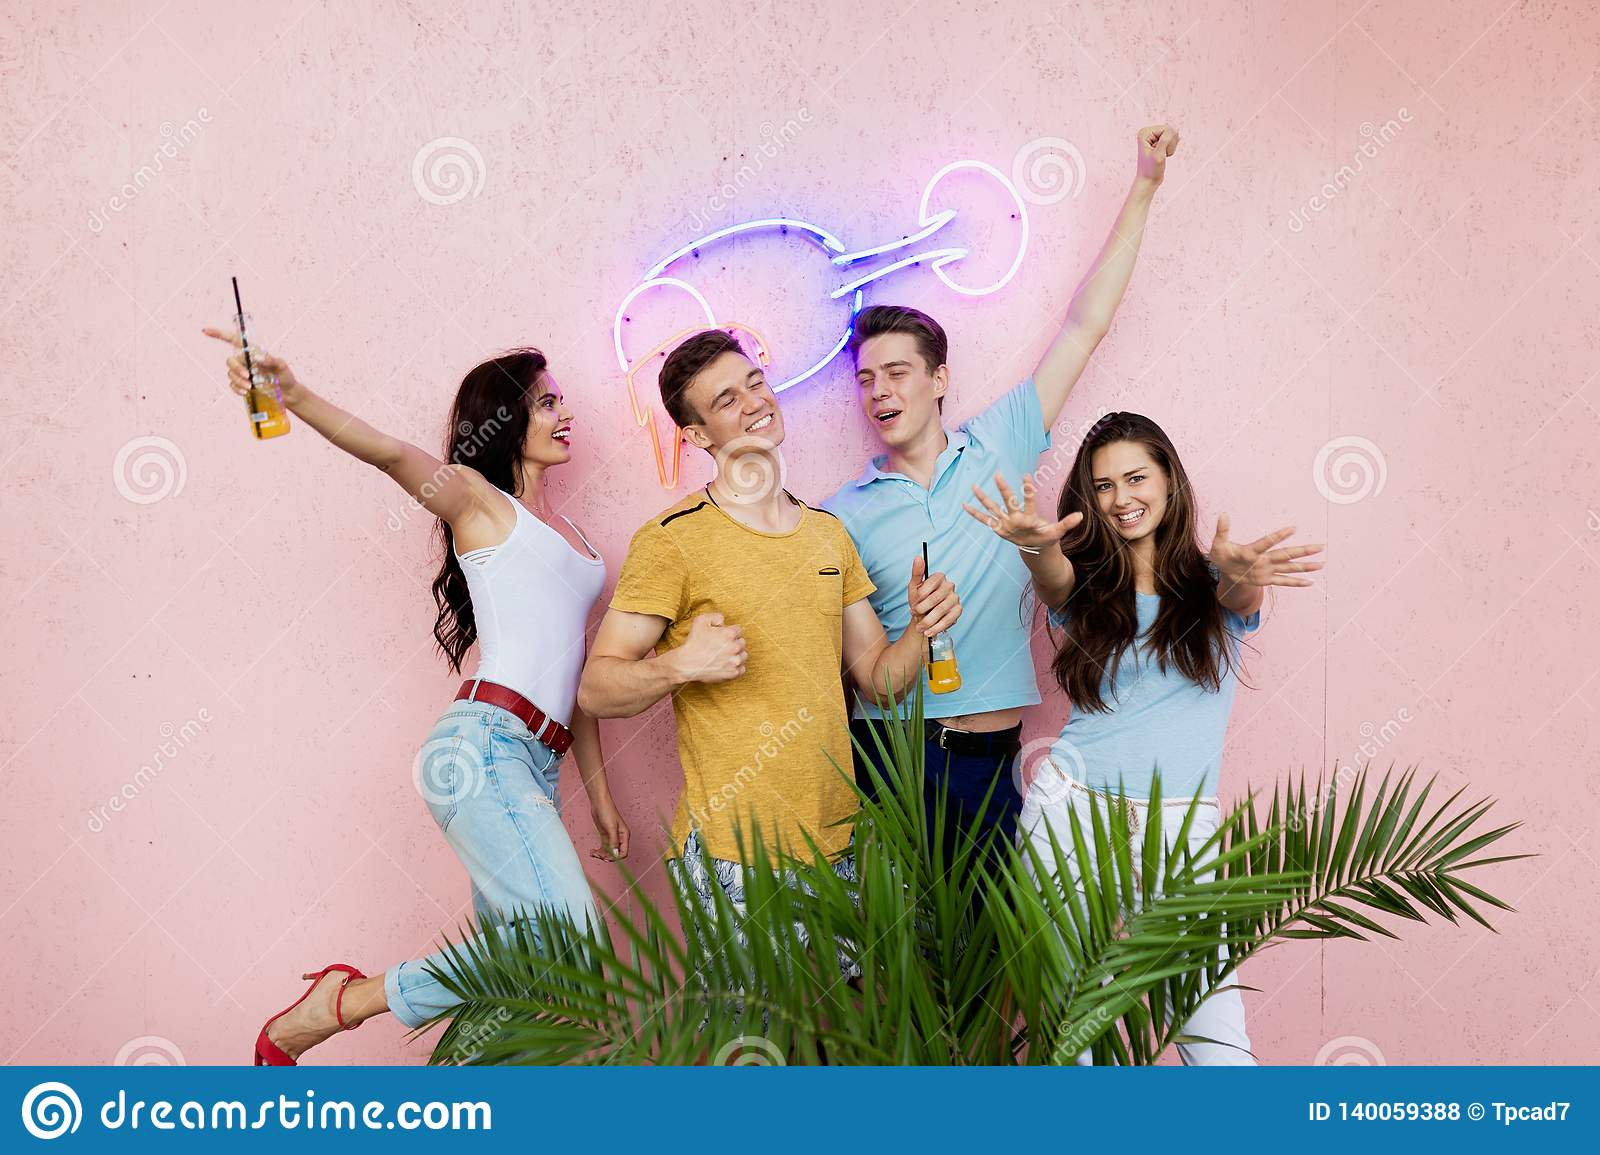 A company of good-looking friends laughing, drinking yellow cocktails is standing in front of the pink wall and behind a